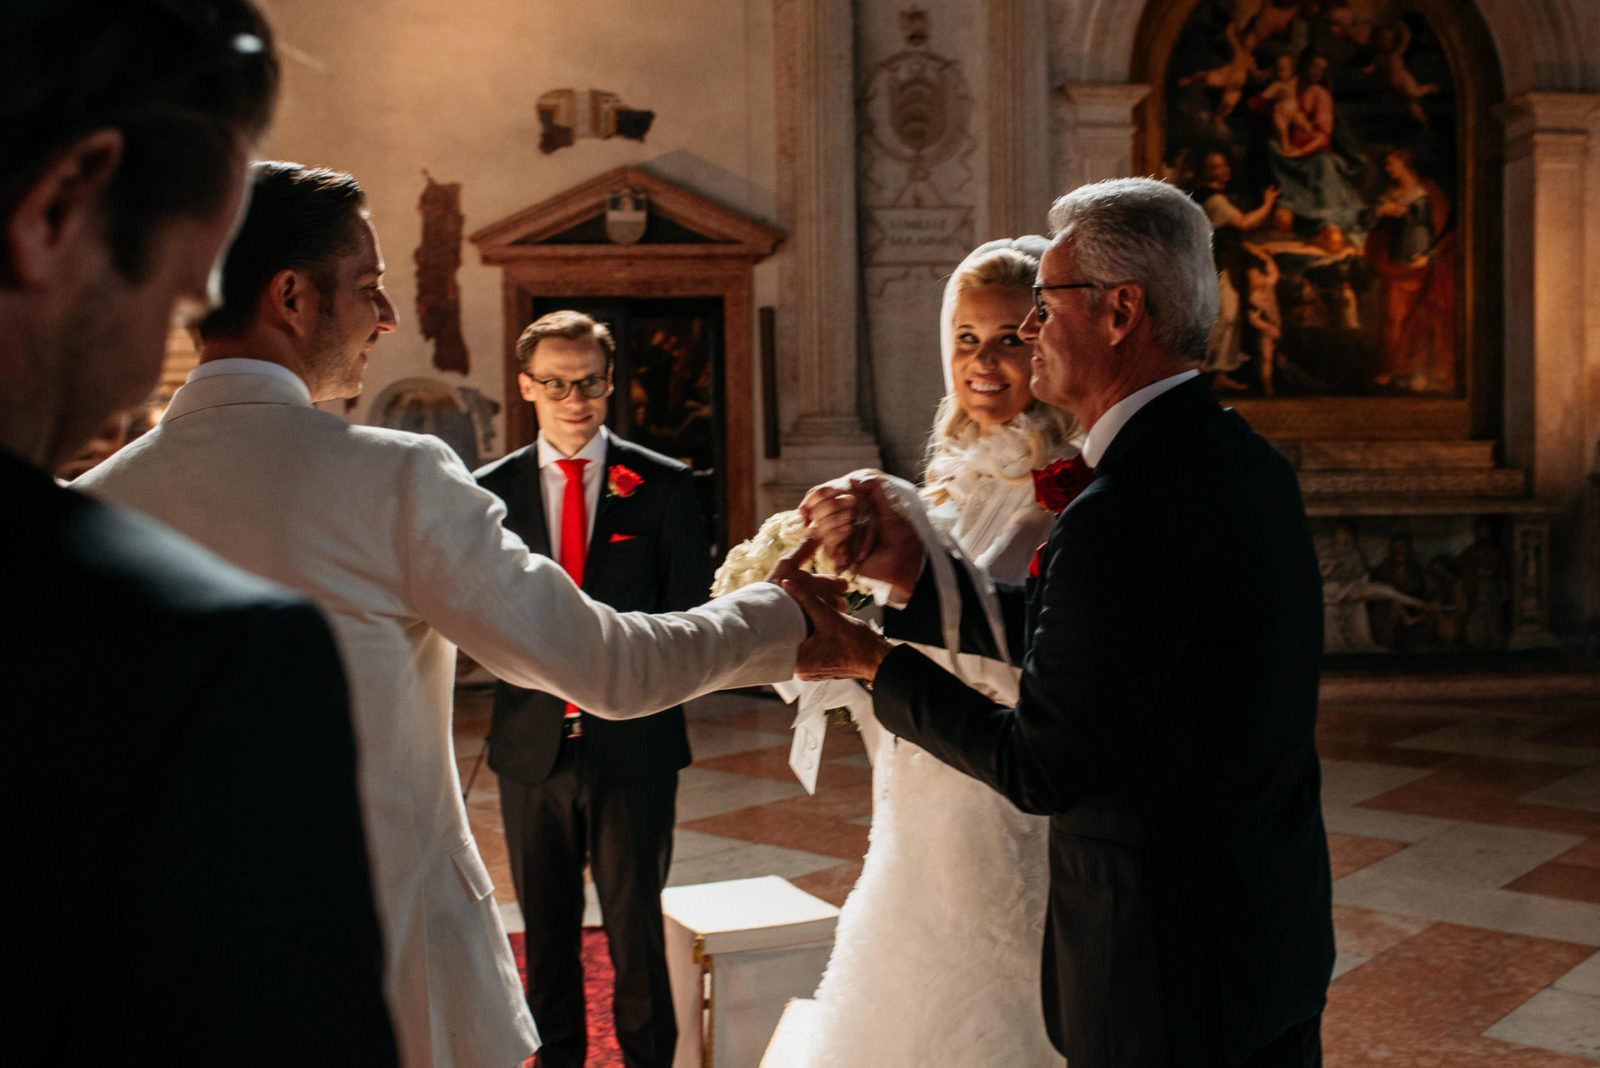 julia_manuel_036_italy_wedding